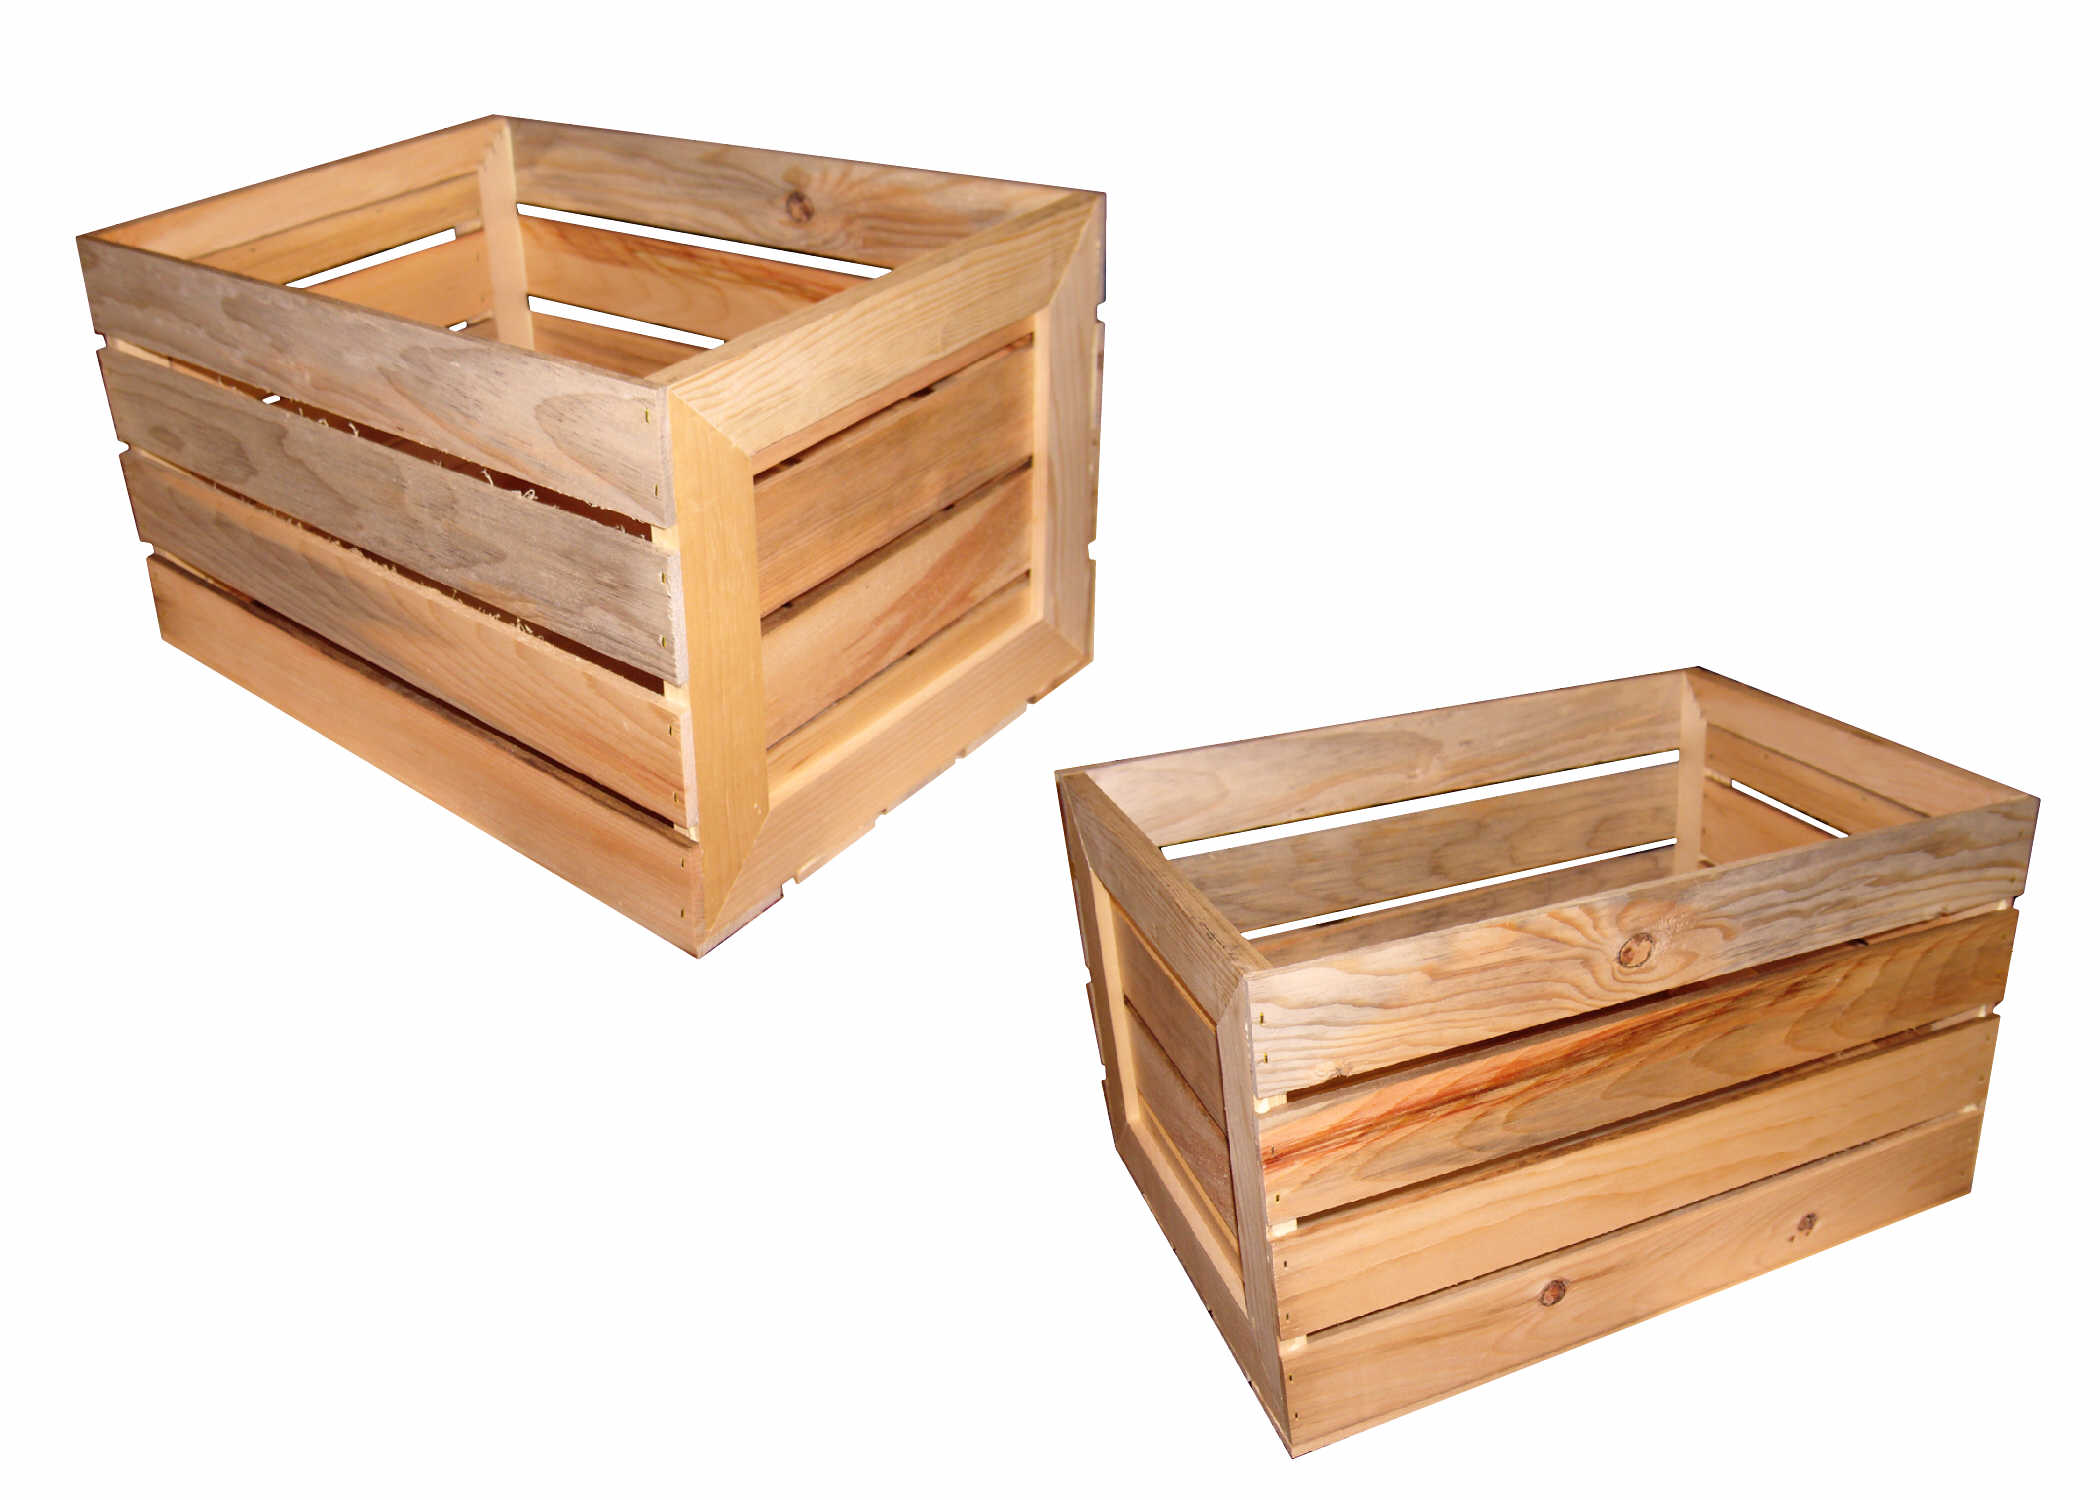 custom wooden boxes crates and baskets